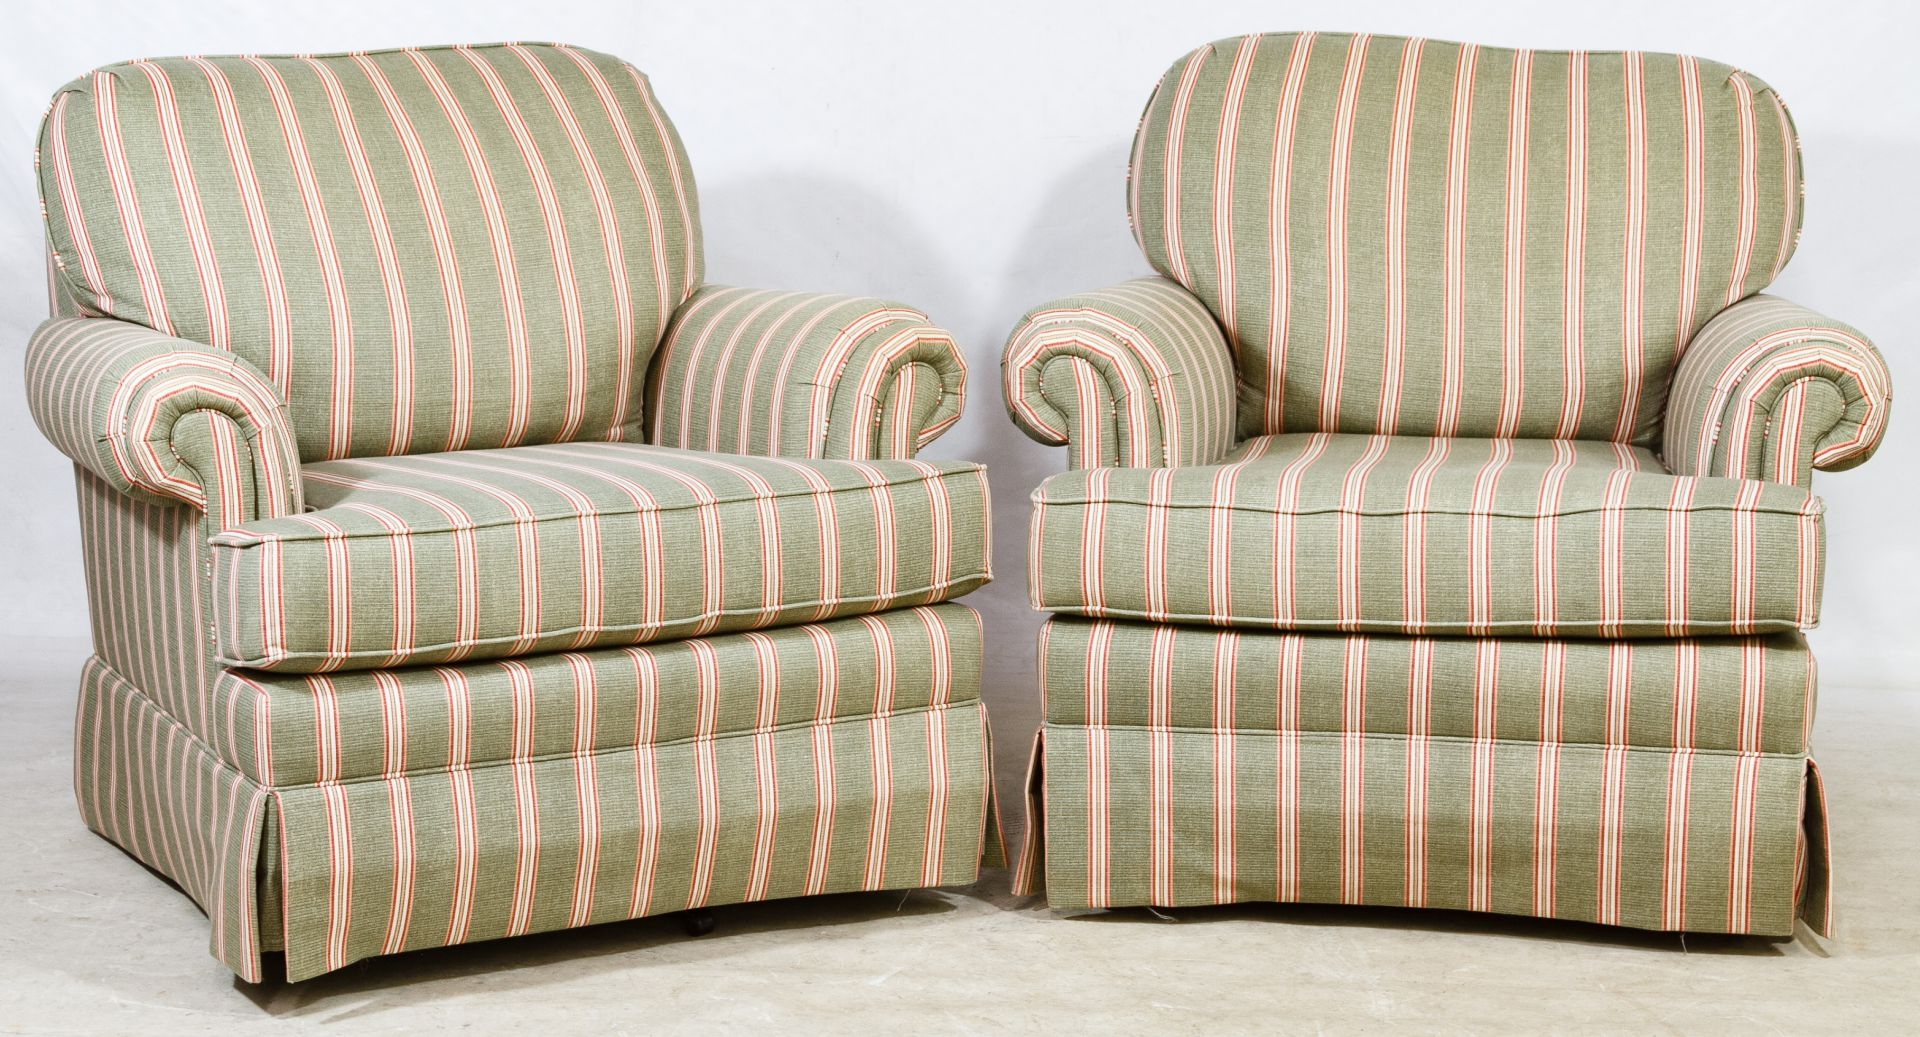 Lot 84 Upholstered Swivel Rockers By Norwalk Furniture Leonard Auction Sale 228